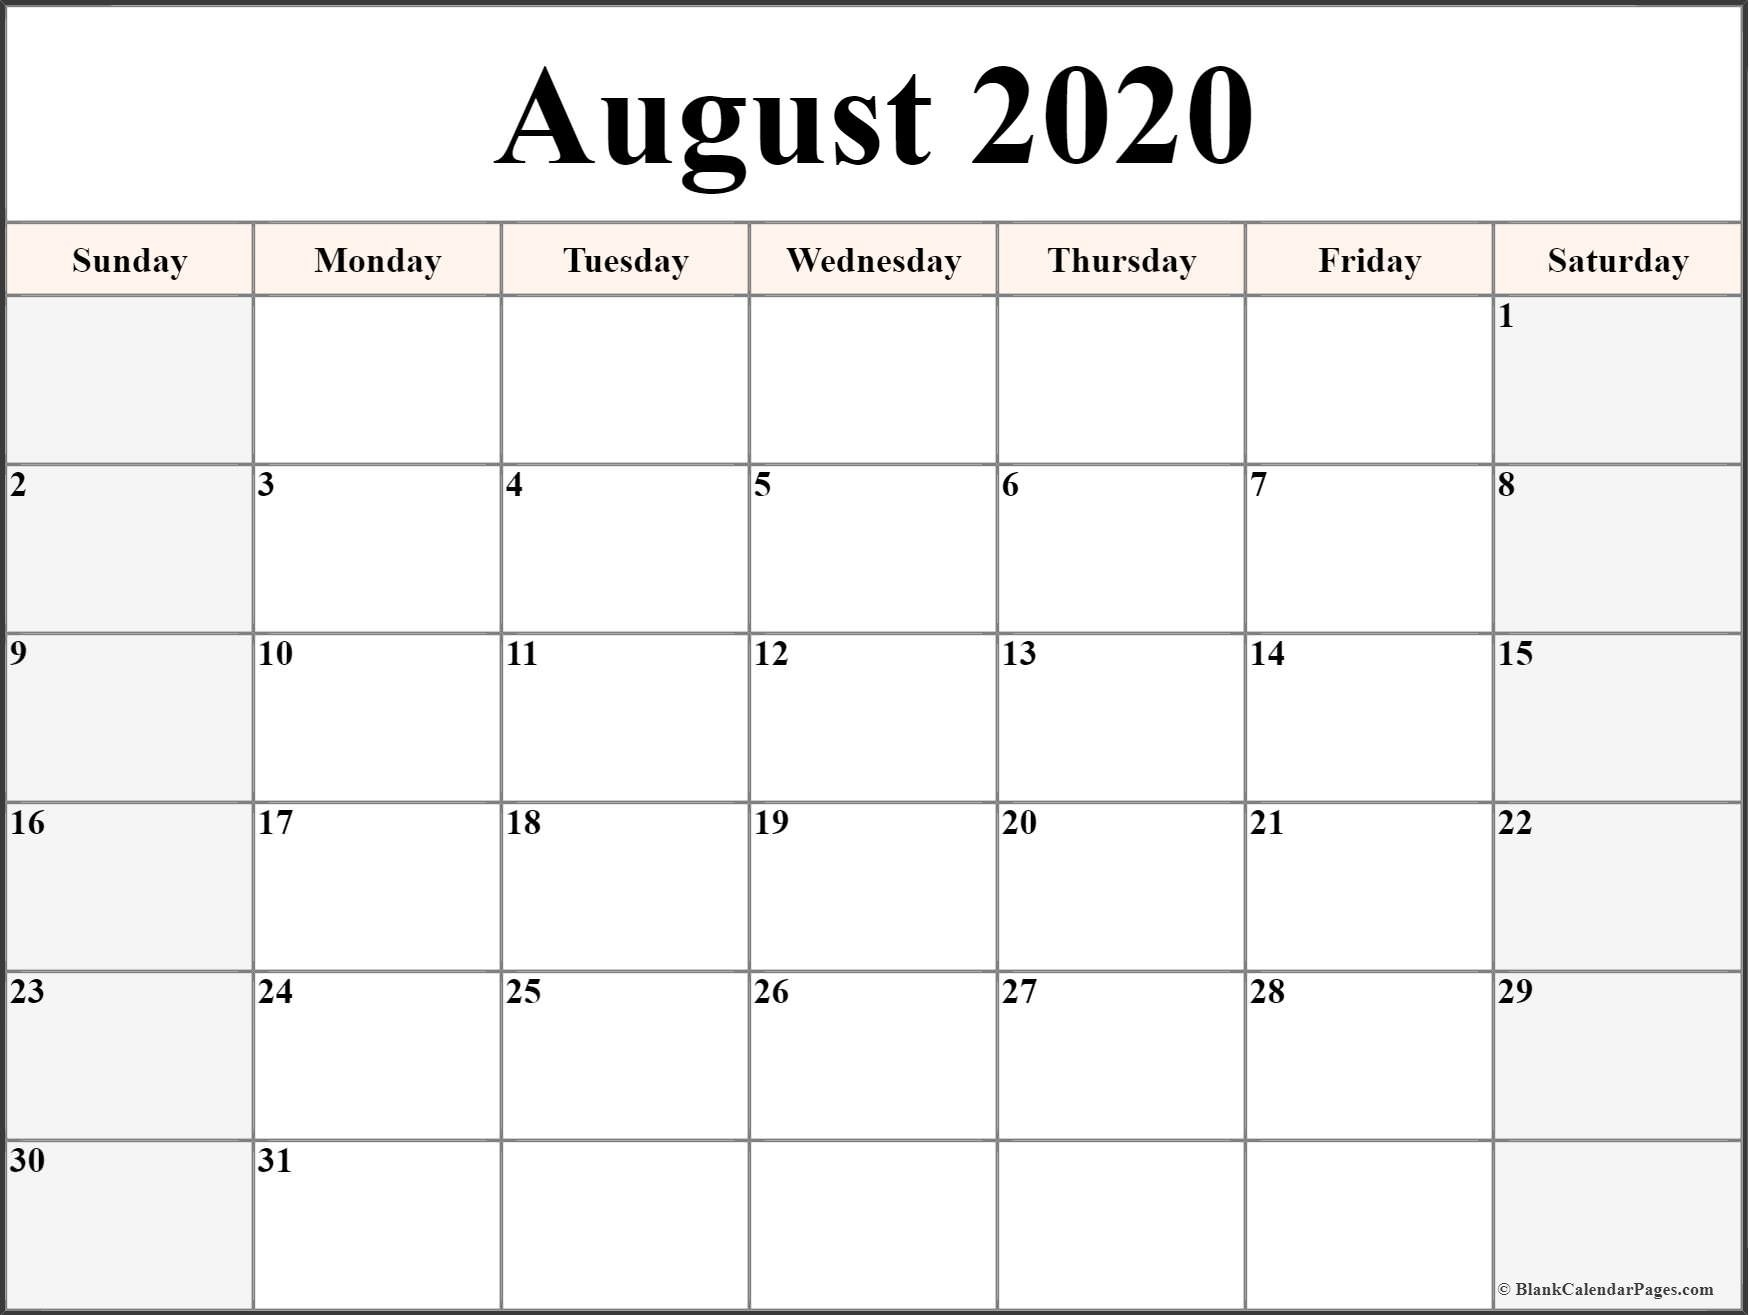 August 2020 Calendar | Free Printable Monthly Calendars-Free Printable Monthly Calendar August 2020